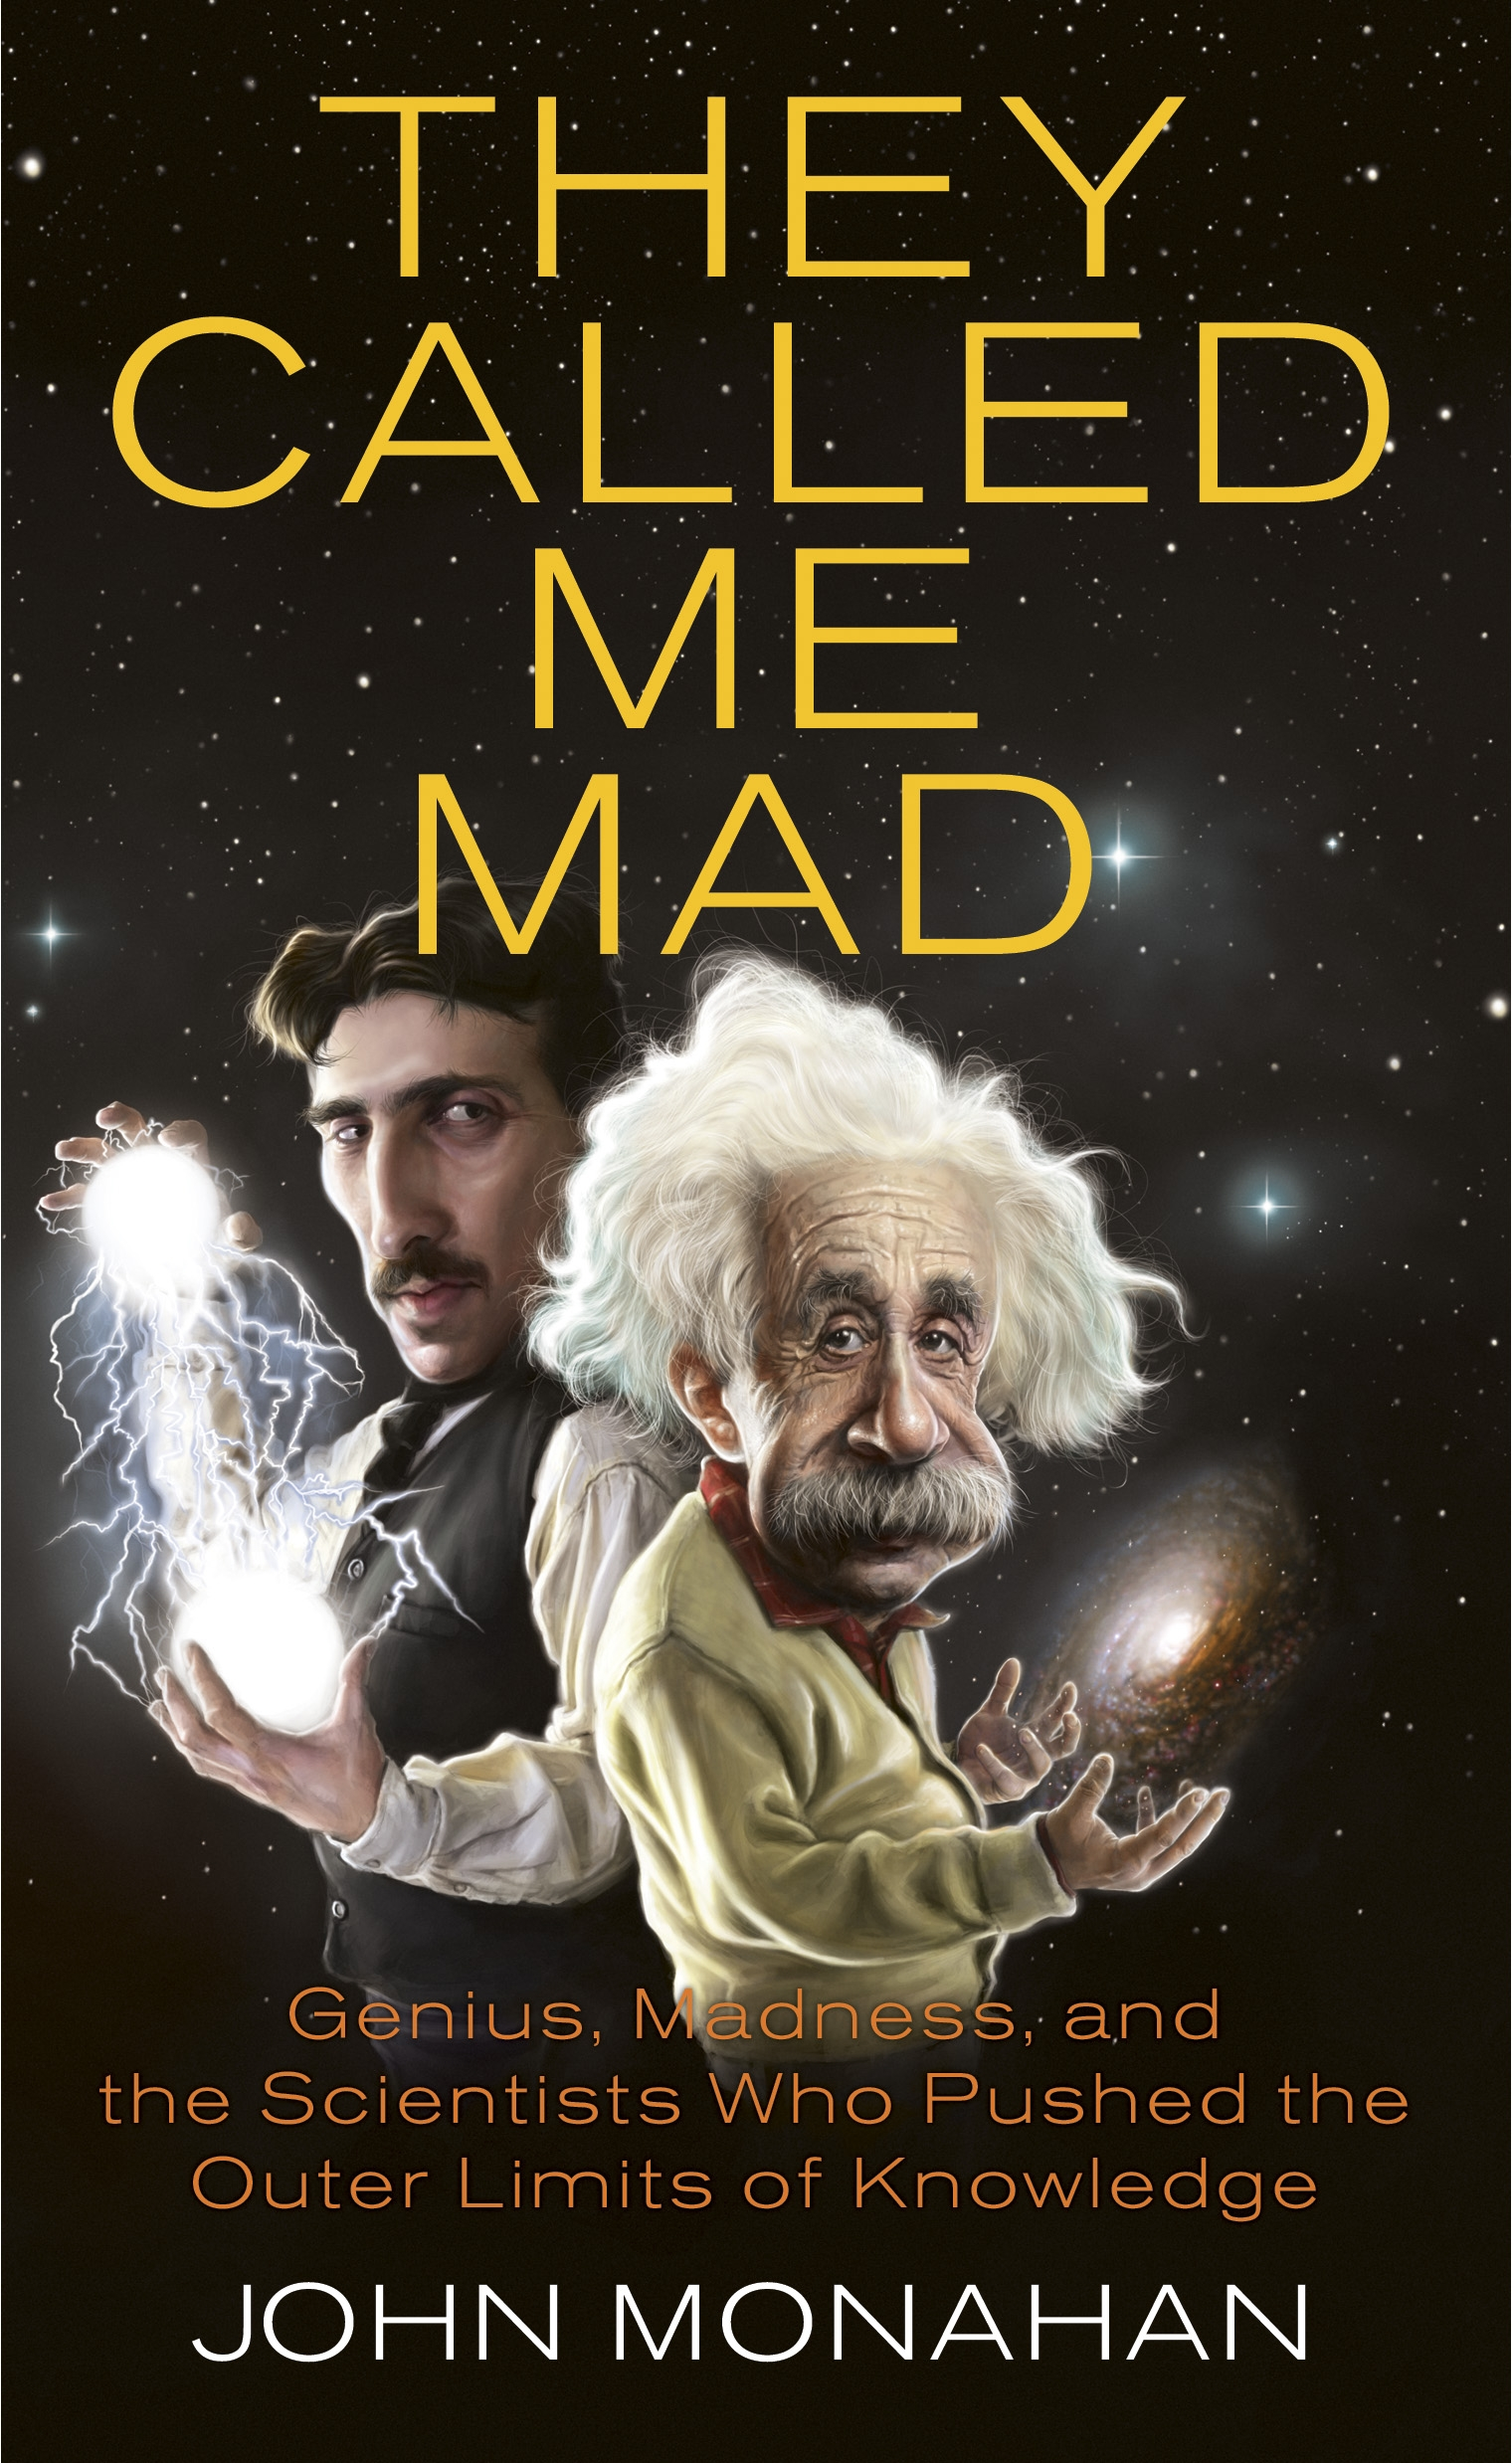 mad scientists – Mad4science